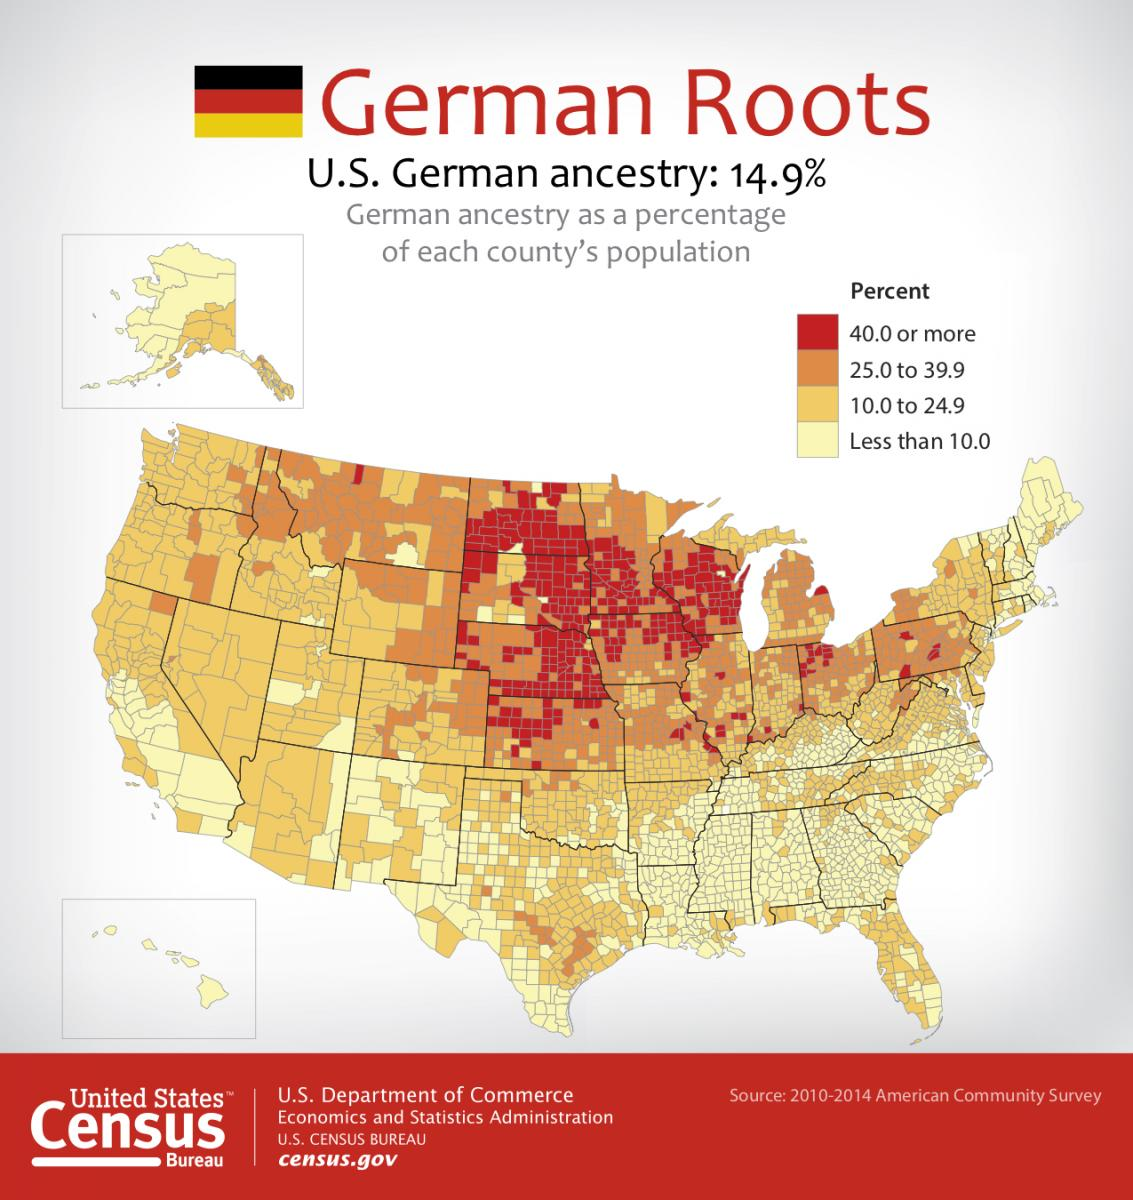 German Roots by county